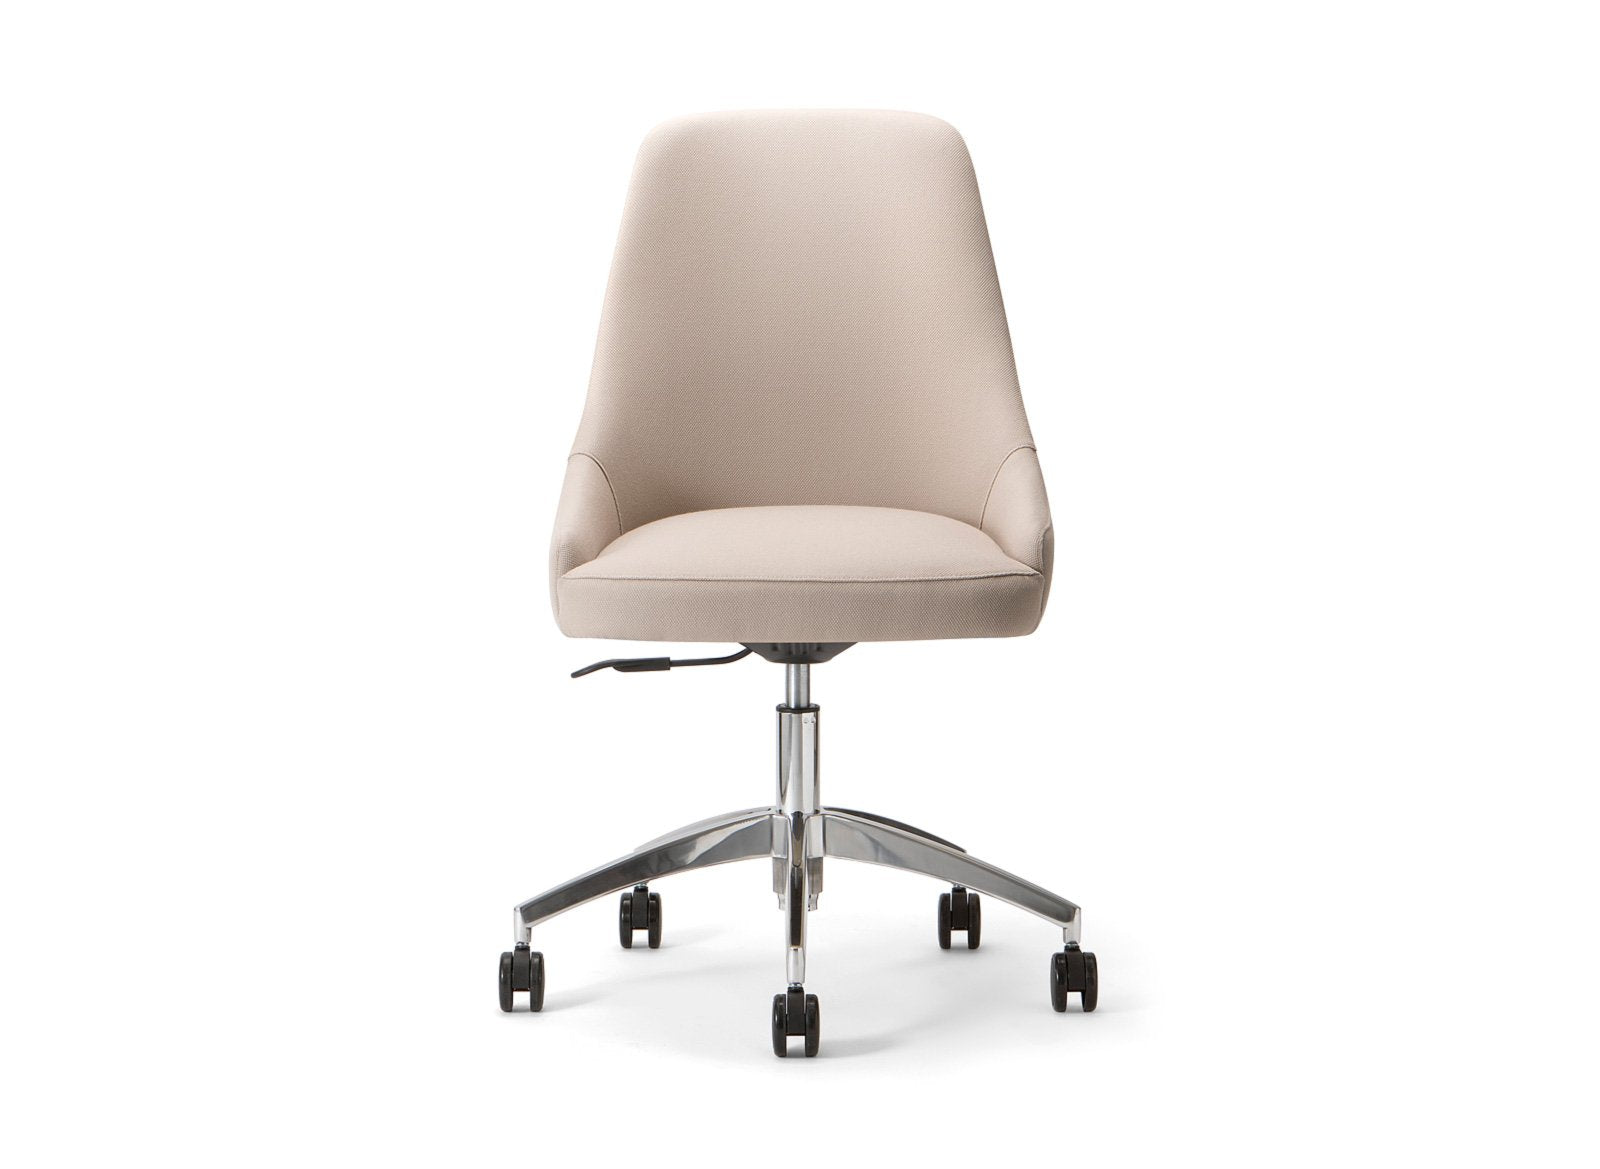 Adima 01 Side Chair c/w Wheels-Torre-Contract Furniture Store